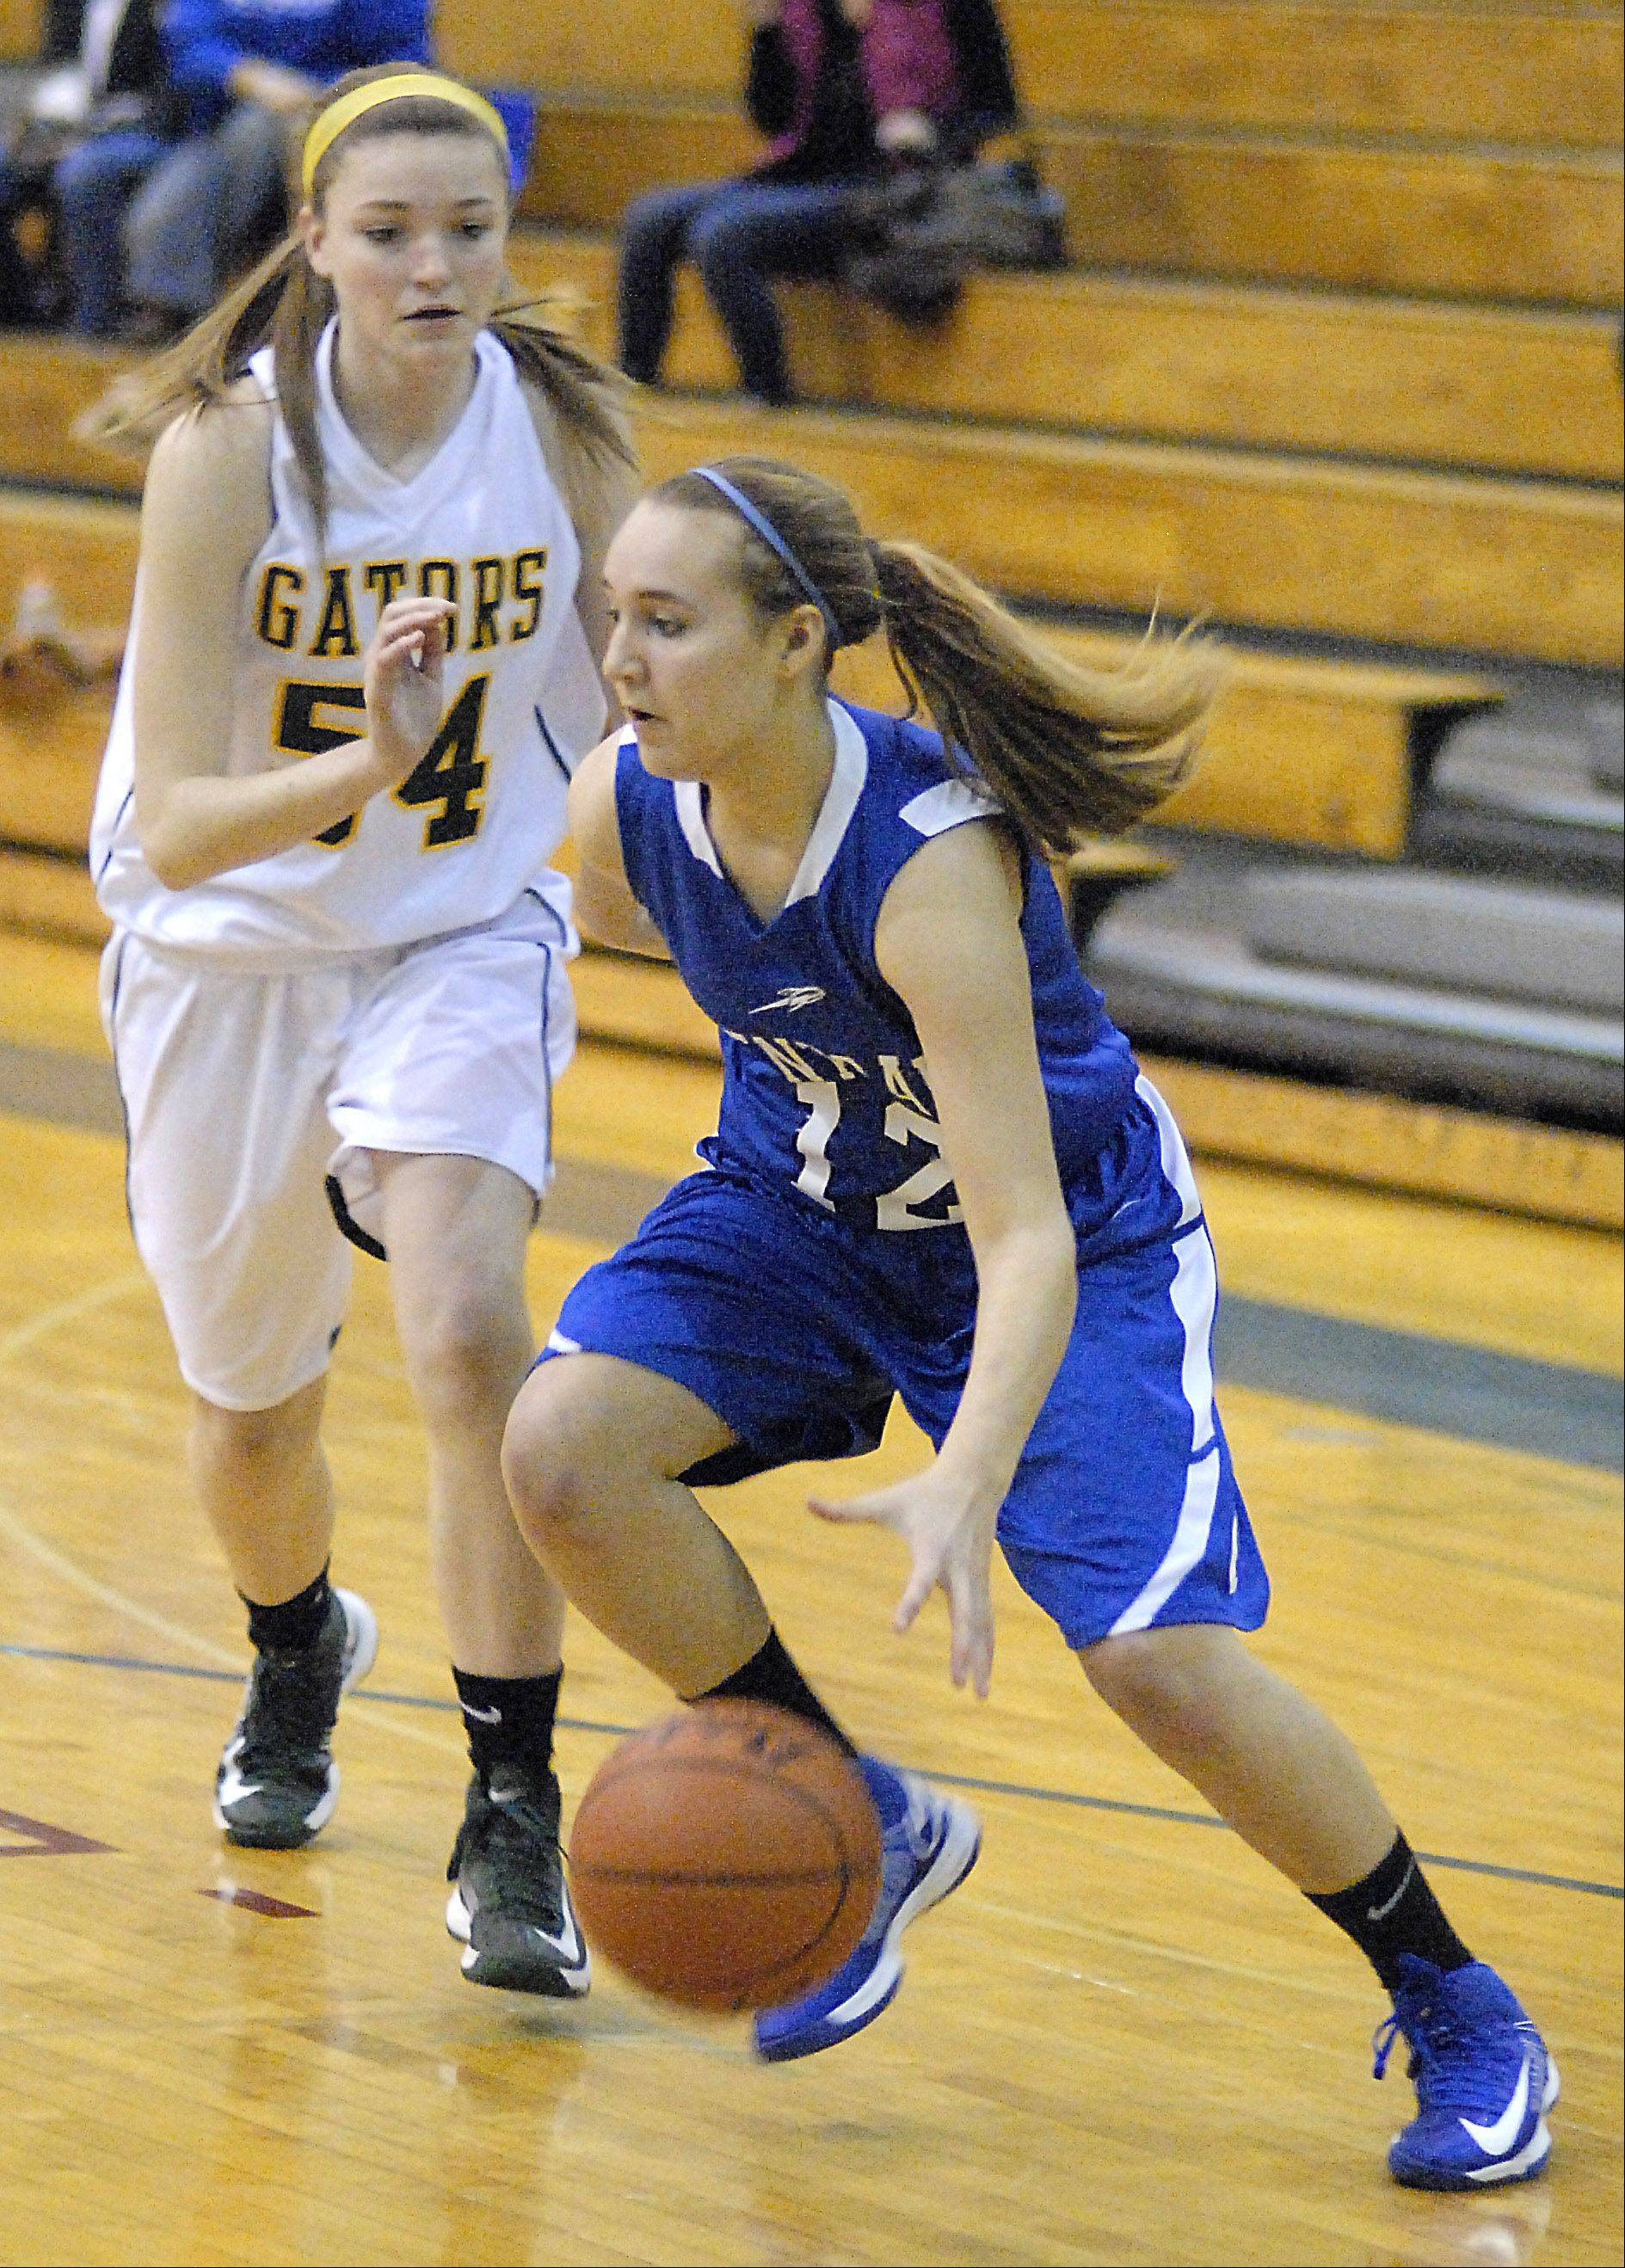 Images from the Burlington Central vs. Crystal Lake South girls basketball game Saturday, December 15, 2012.